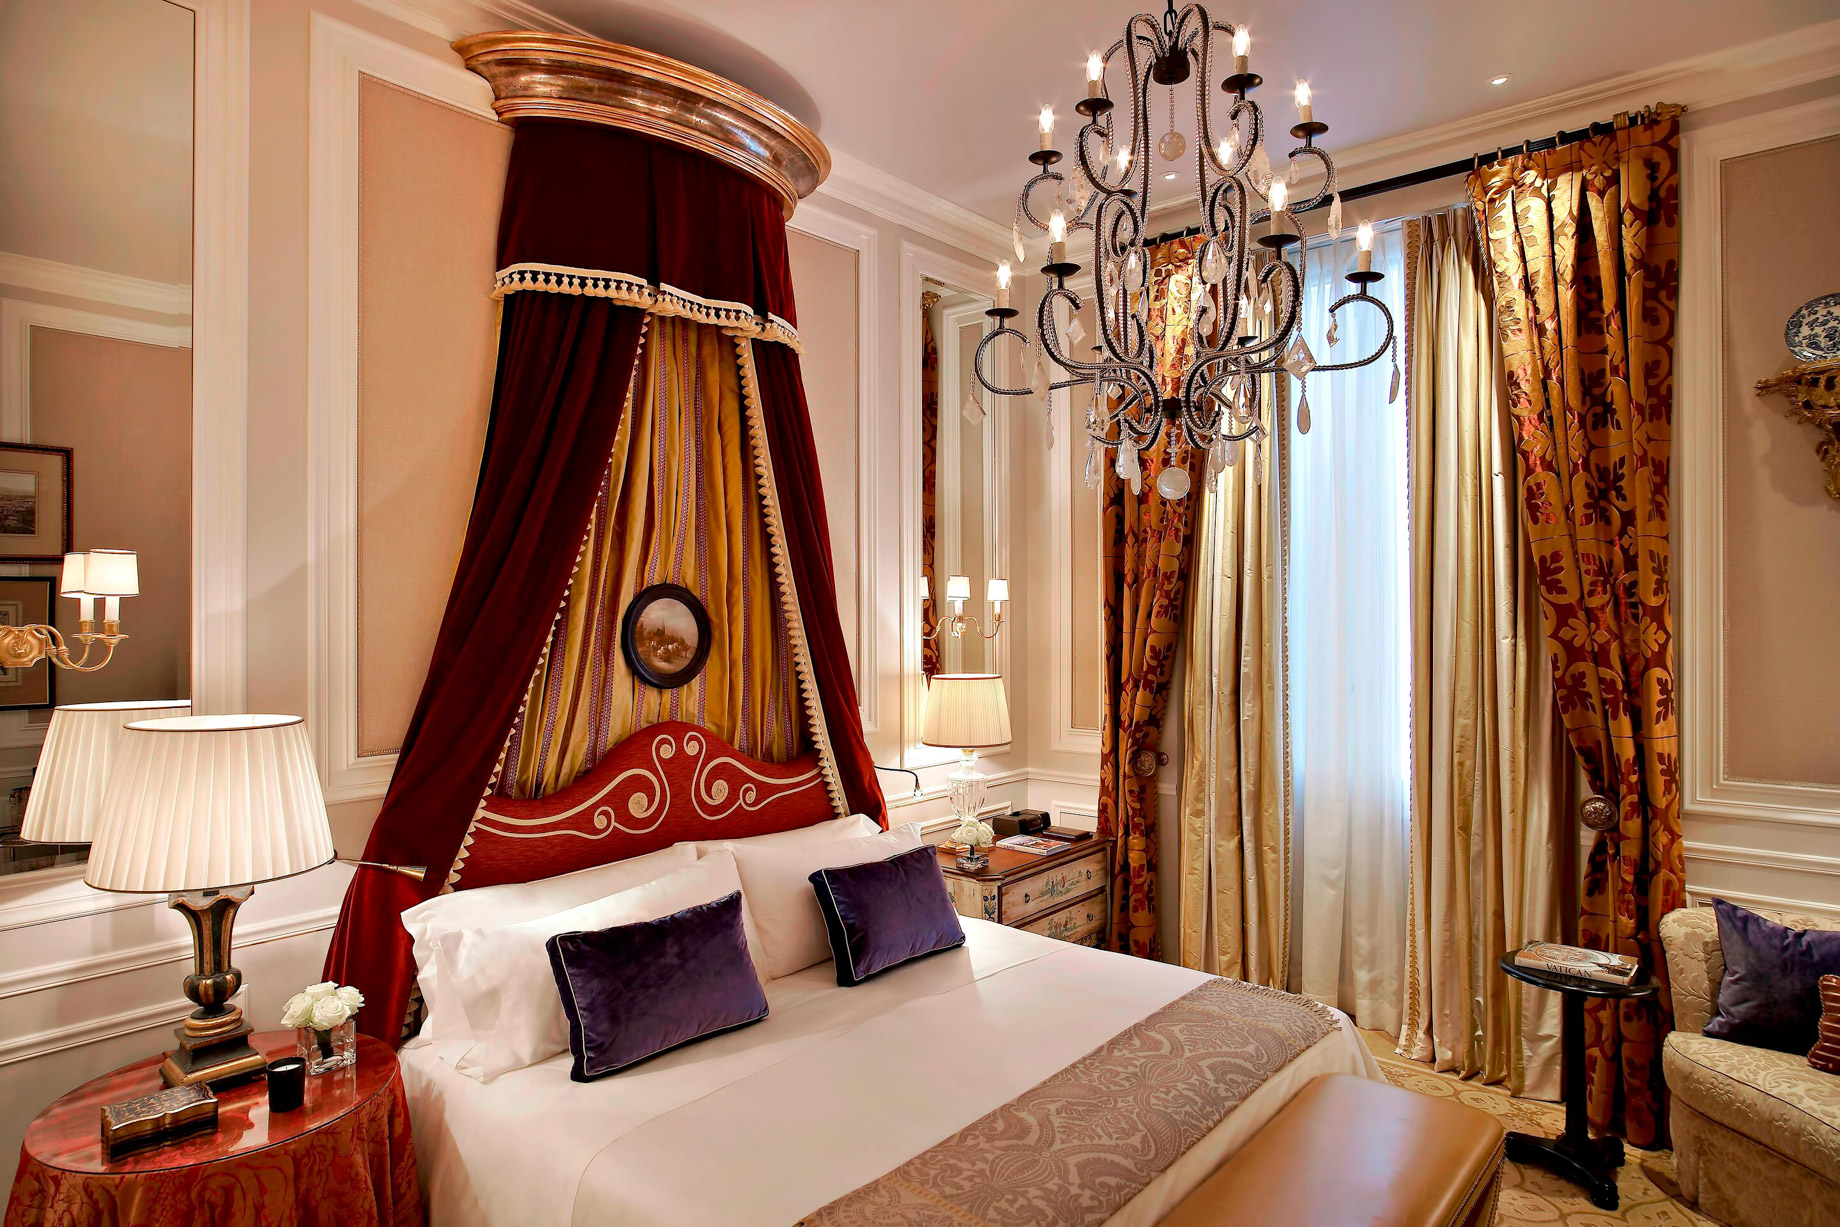 The St. Regis Florence Luxury Hotel – Florence, Italy – Deluxe Room Medici style